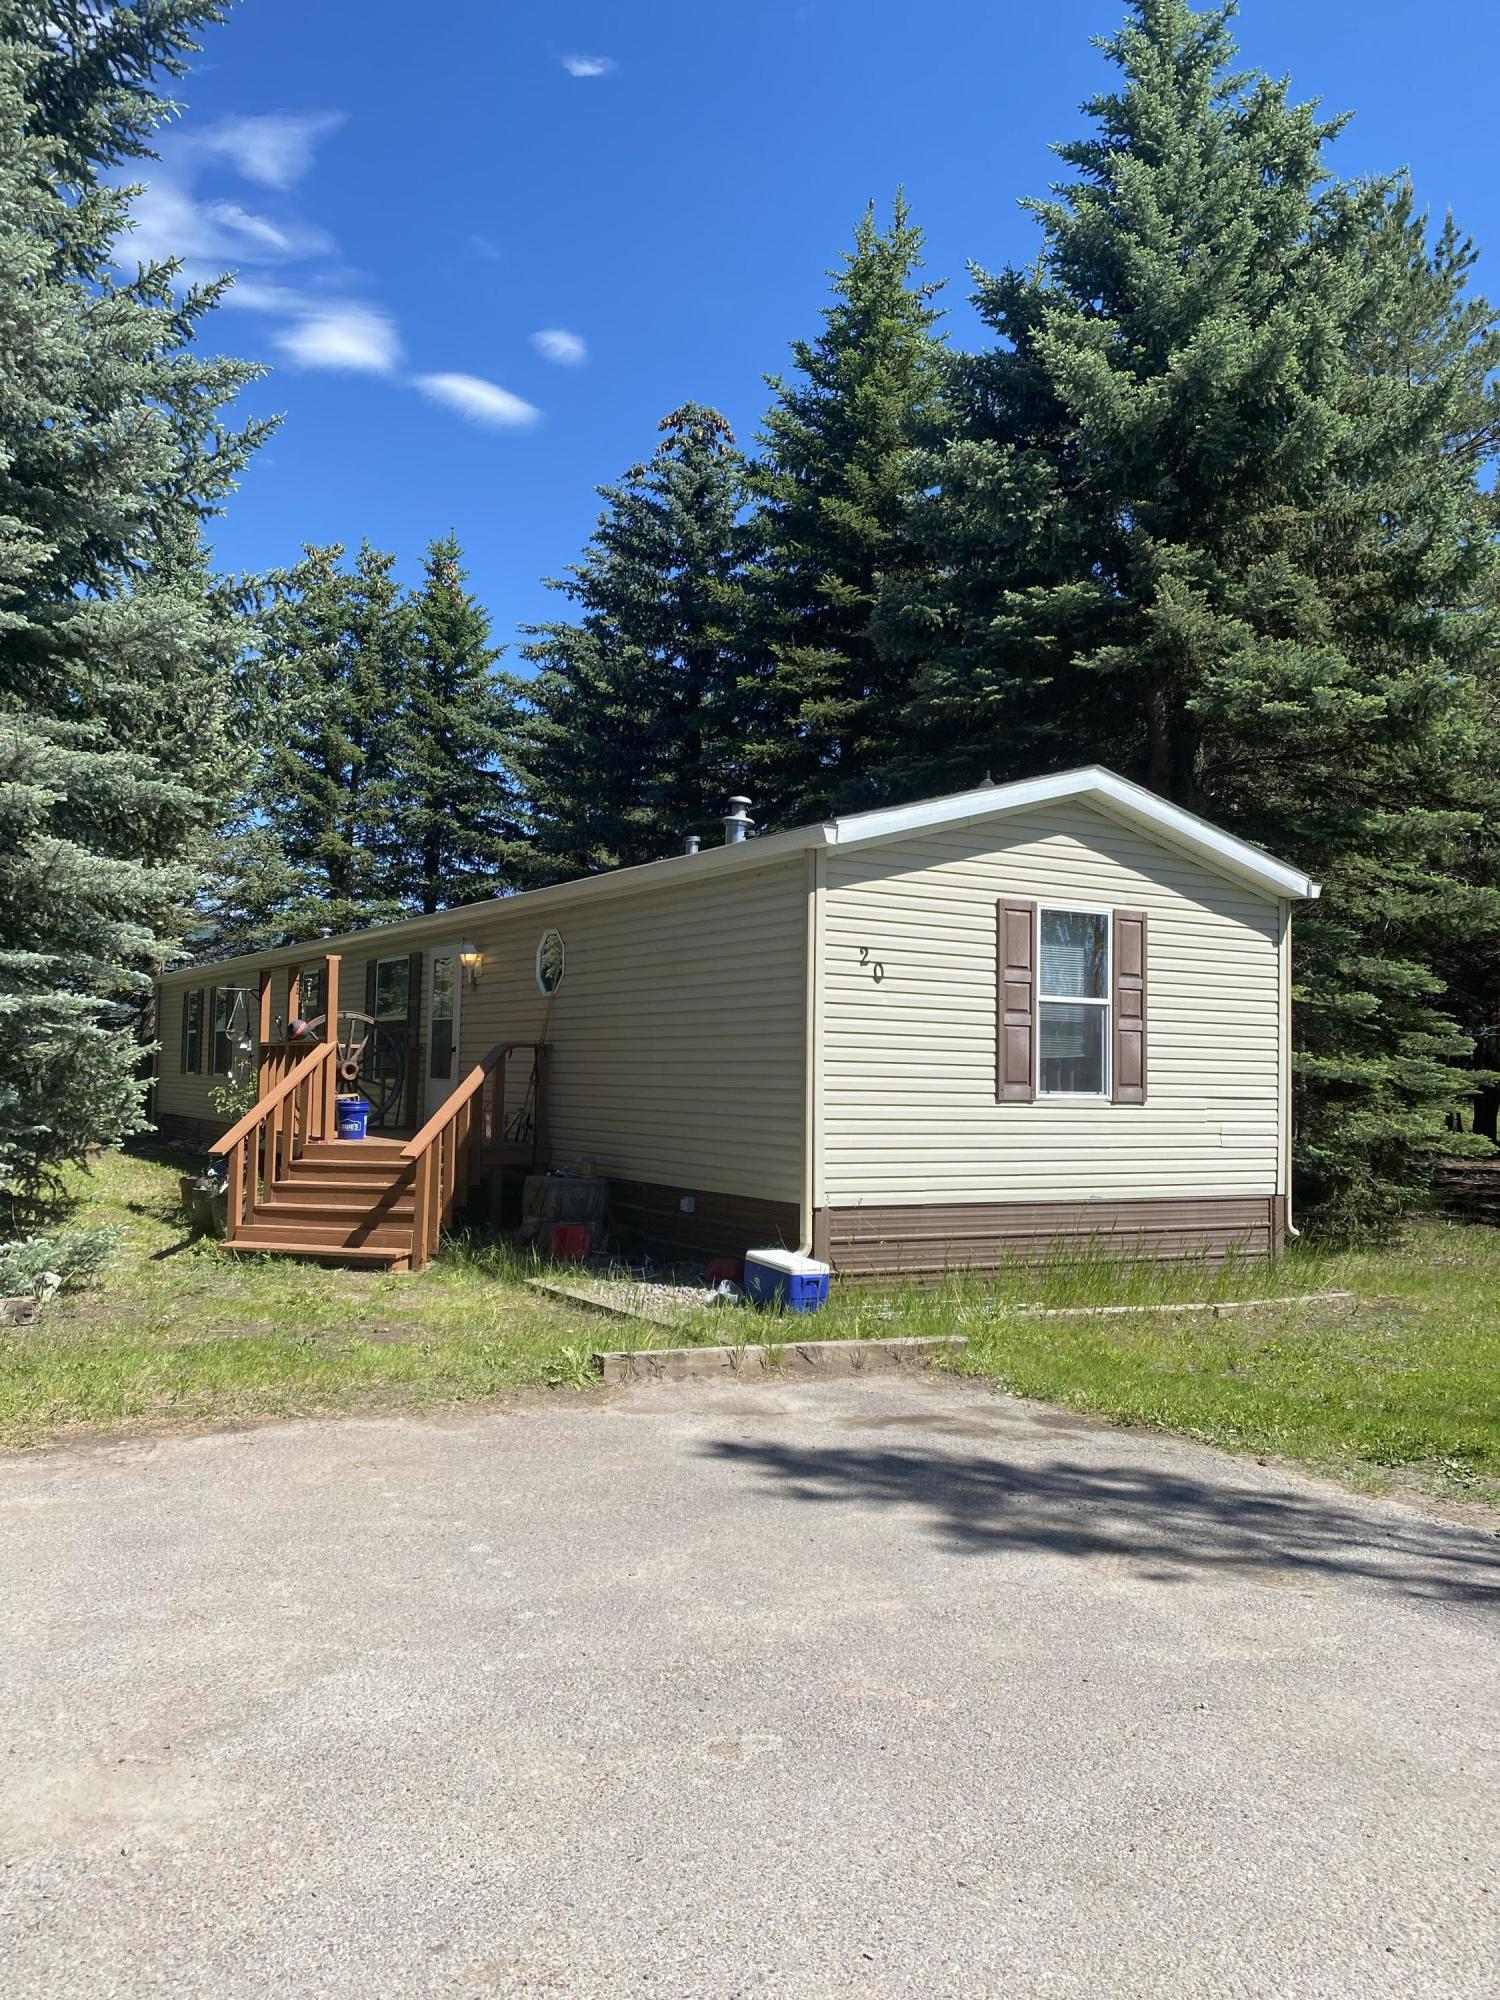 BACK ON THE MARKET_ NO FAULT OF THE PROPERTY!!PRIVACY IN A MOBILE HOME PARK!!! Yes!!---Come check out this charming 3 bed/2 bath mobile home in a quiet country setting! Home has many upgrades such as central air conditioning, Bamboo flooring, as well as 2 decks and a fenced in dog area. The back deck also has a built in kayak/ canoe storage shelf. Home sits in a mobile home park and any potential buyer not moving the mobile home will need to get approval from manager to continue renting the lot. SALE IS OF TRAILER ONLY AND DOES NOT INCLUDE ANY REAL PROPERTY. For a showing please call Billy Carpenter at (406) 253-1894 or your real estate professional.